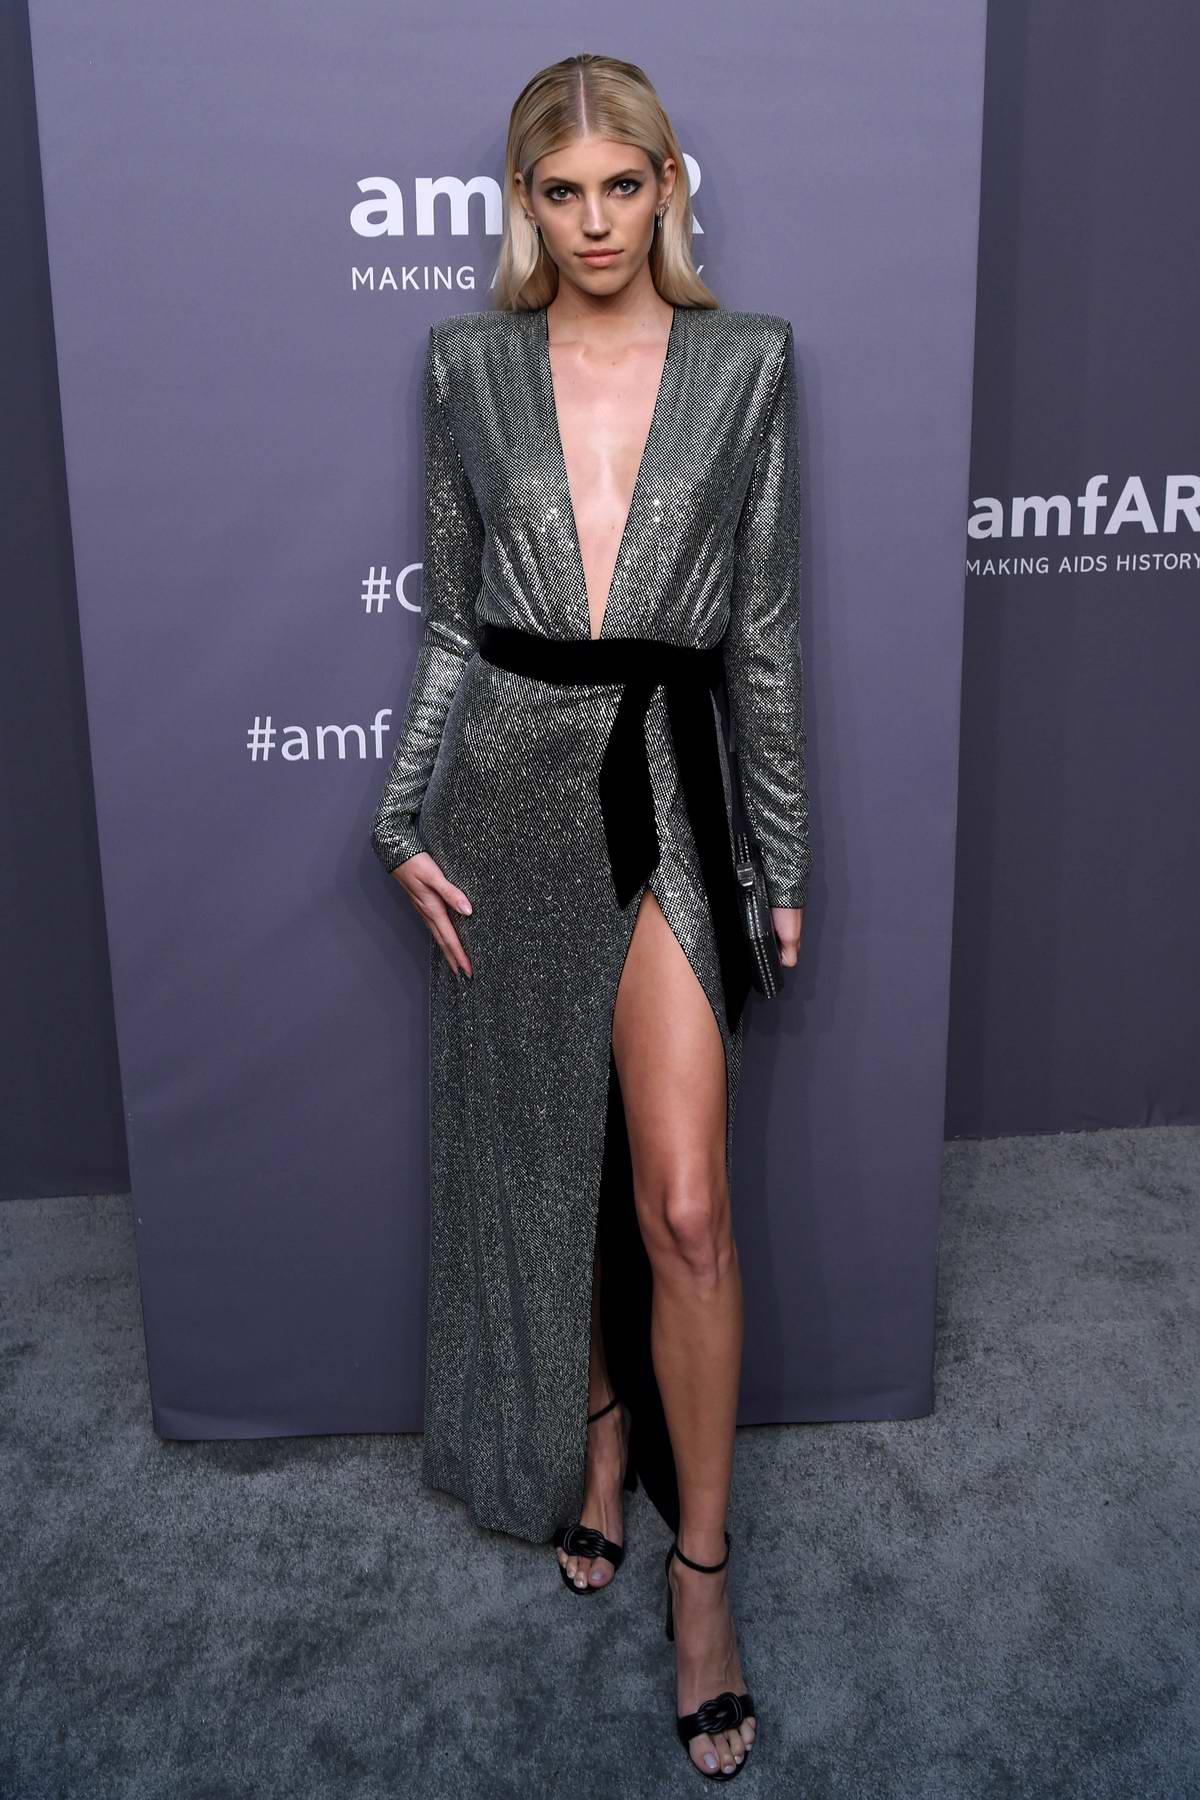 Devon Windsor attends amfAR New York Gala 2019 at Cipriani Wall Street in New York City